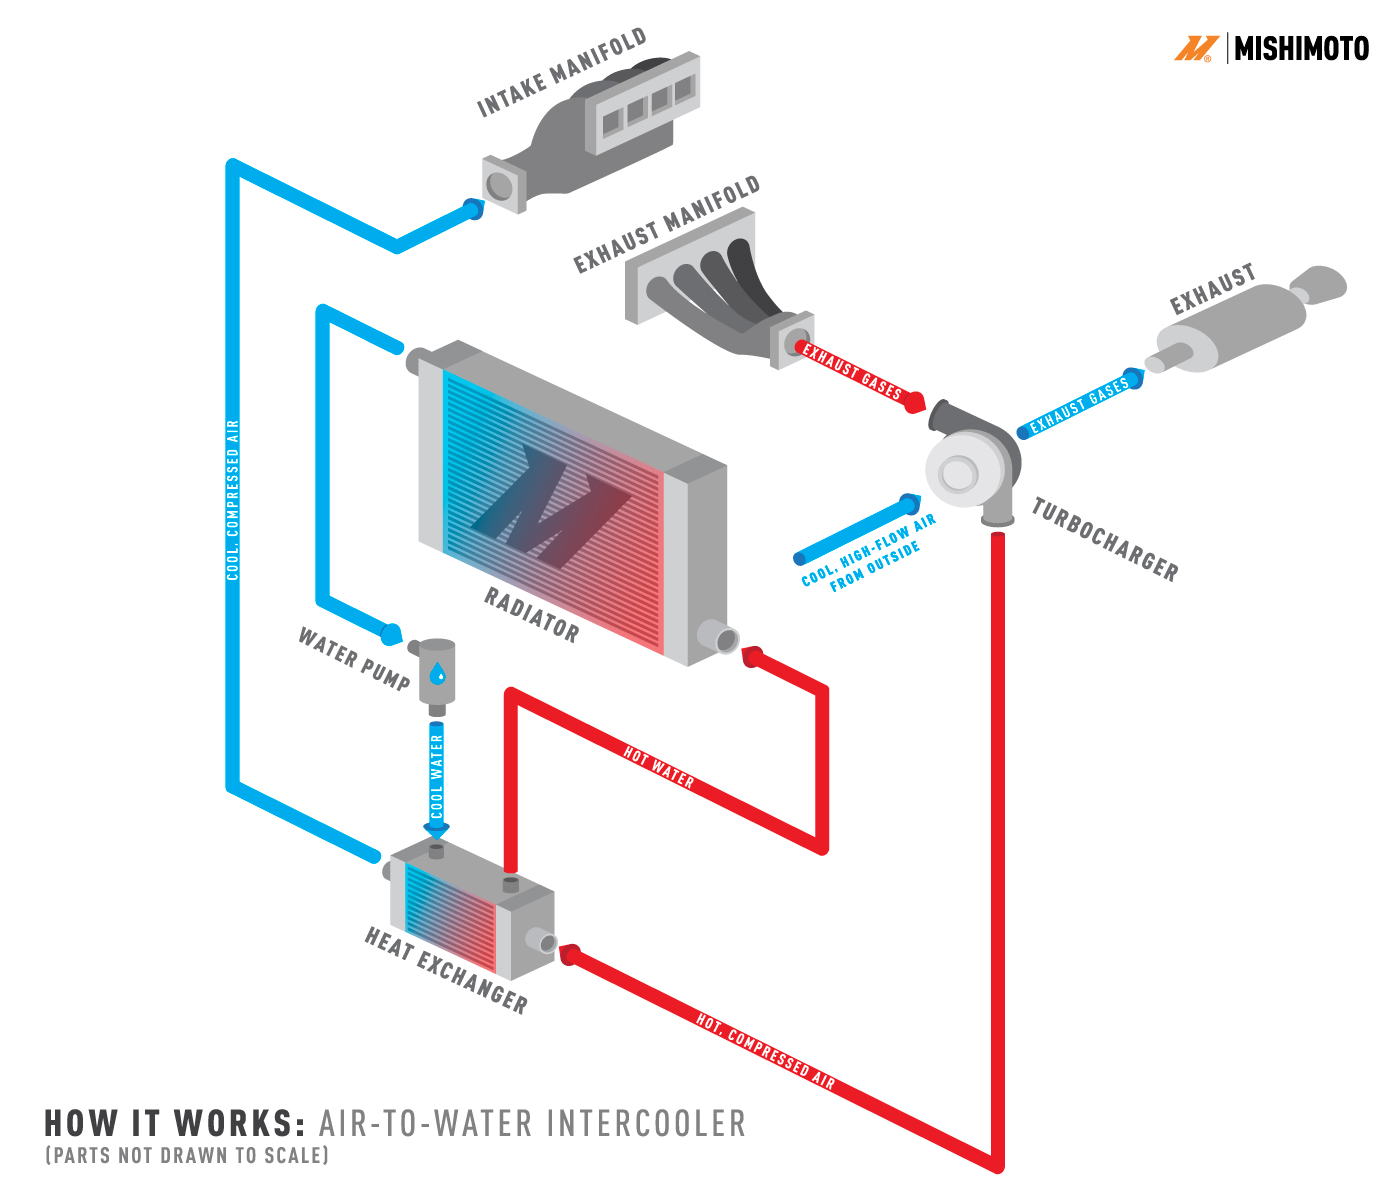 air-to-water-intercooler-diagram-01 | mishimoto engineering blog  mishimoto